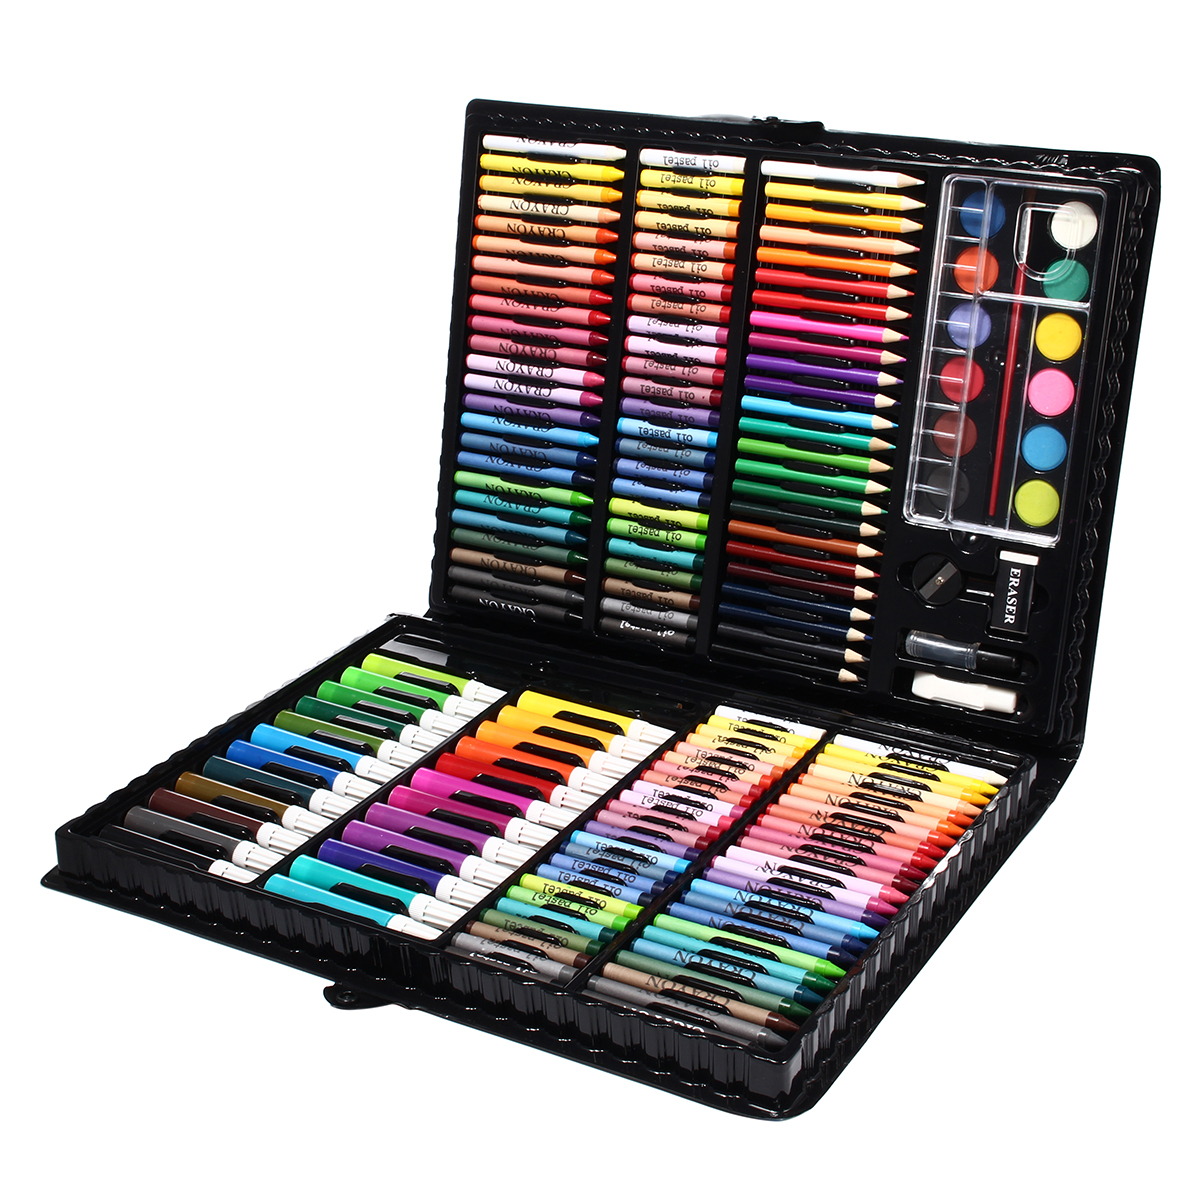 168Pcs Drawing Art Marker Pen Painting Sketching Color Pencils Crayon Oil Pastel Water Color Pen